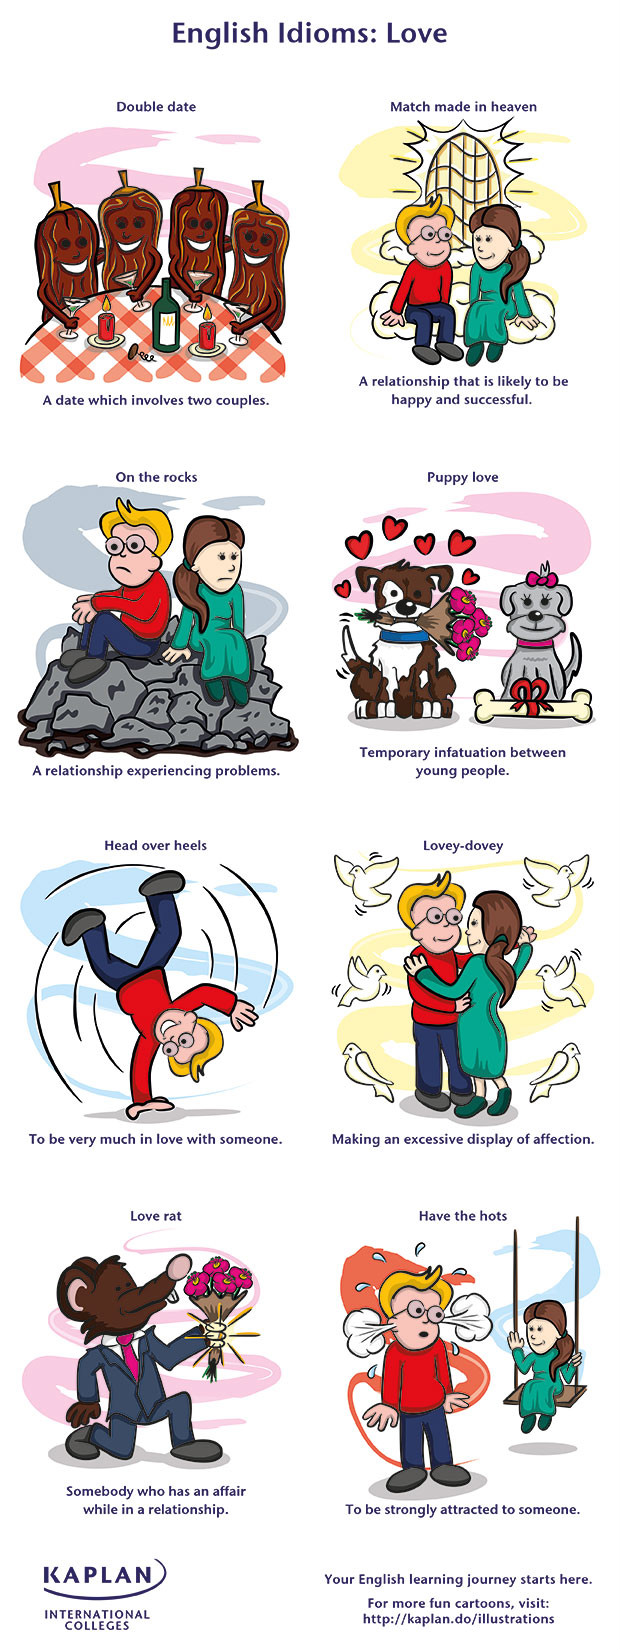 25 Fantastic Idioms About Love And Their Meanings